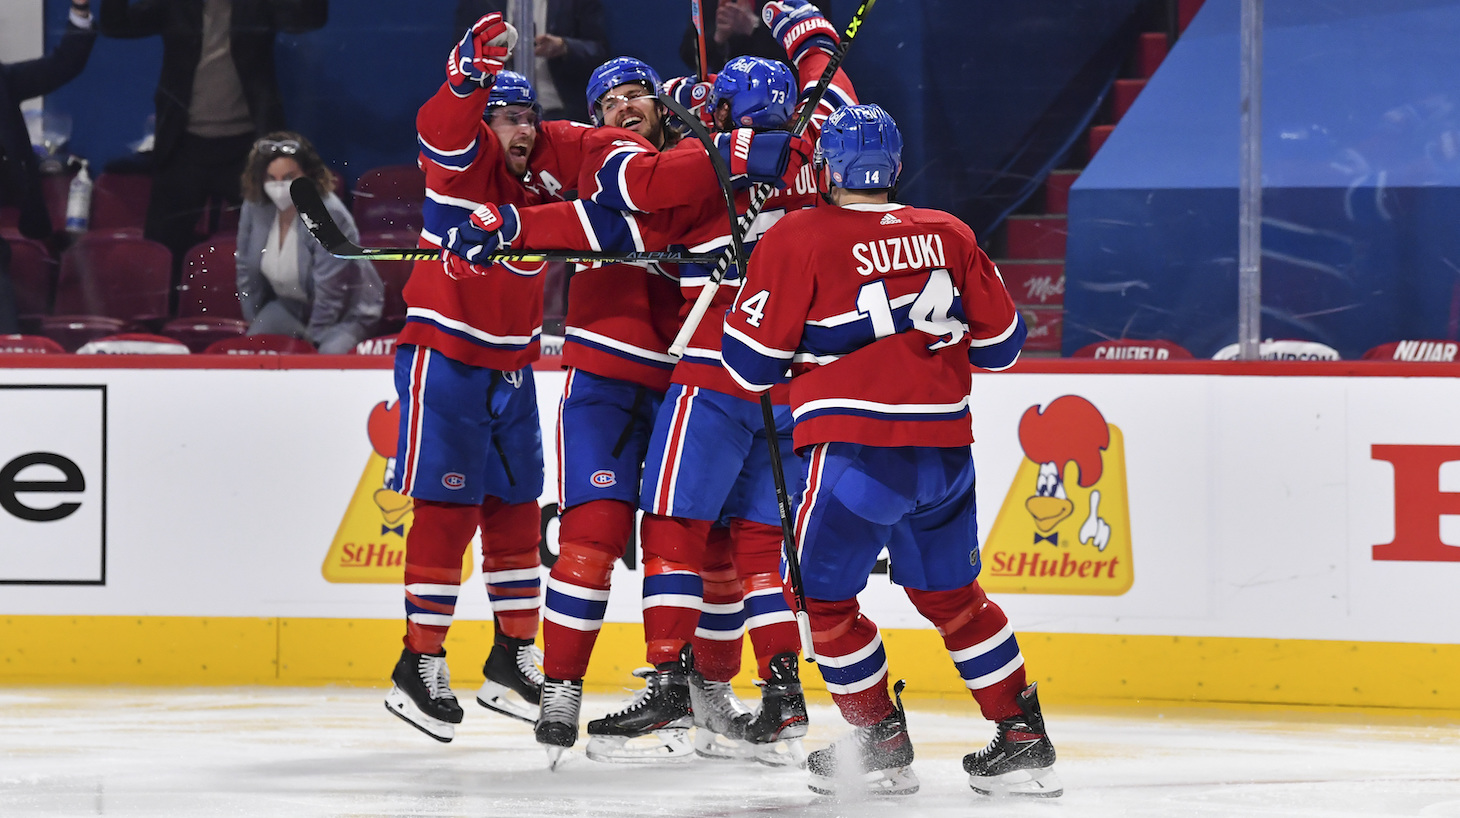 MONTREAL, QC - JUNE 07: The Montreal Canadiens celebrate an overtime victory against the Winnipeg Jets in Game Four of the Second Round of the 2021 Stanley Cup Playoffs at the Bell Centre on June 7, 2021 in Montreal, Canada. The Montreal Canadiens defeated the Winnipeg Jets 3-2 in overtime and eliminate them with a 4-0 series win. (Photo by Minas Panagiotakis/Getty Images)